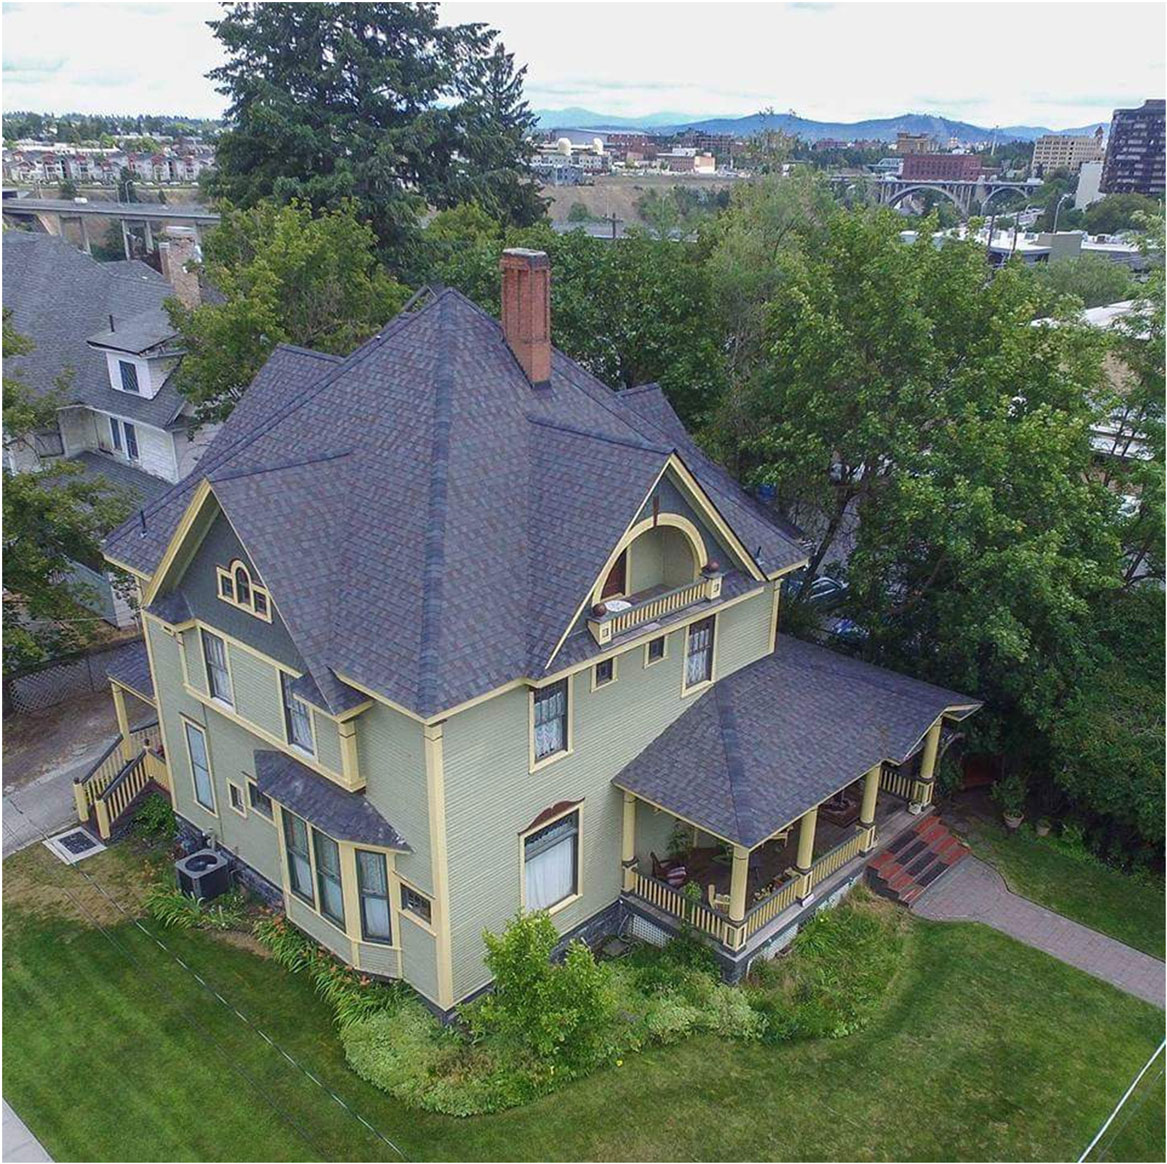 Drone Shot View The 1899 House B&B Policies